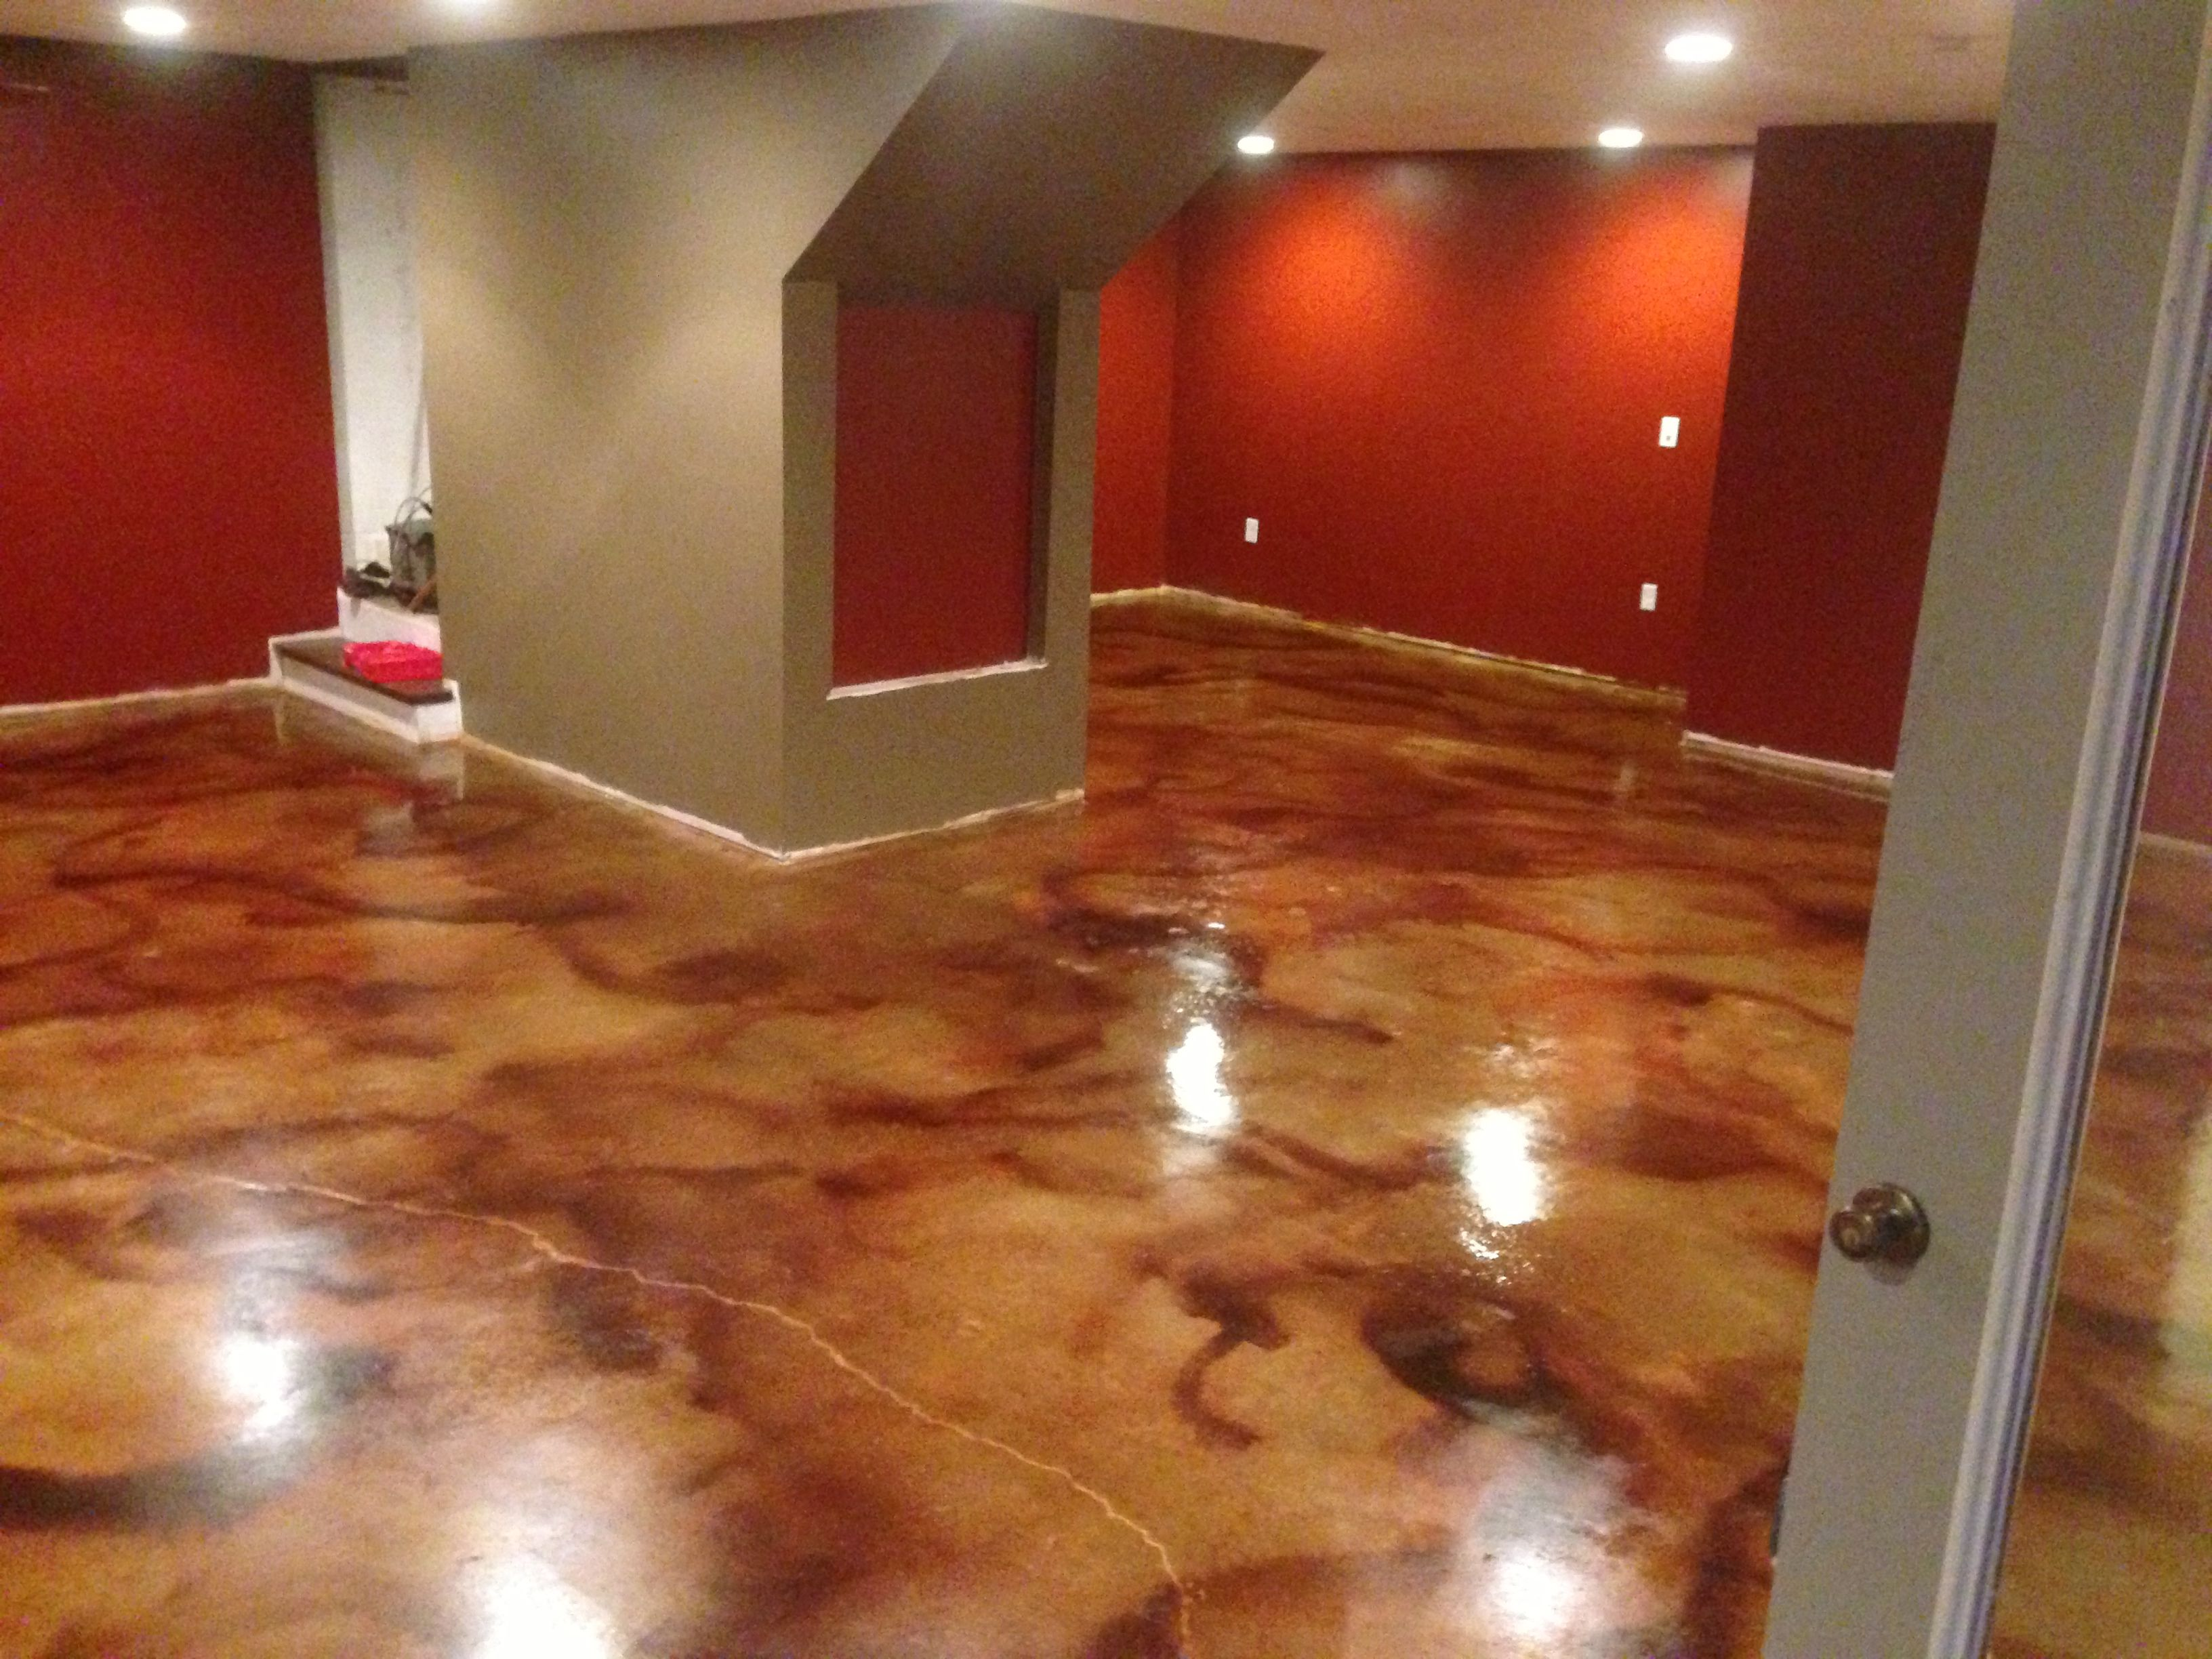 How to acid staining basement floors directcolors acid acid staining basement floors is becoming more and more popular finishing option acid stained floors nvjuhfo Image collections